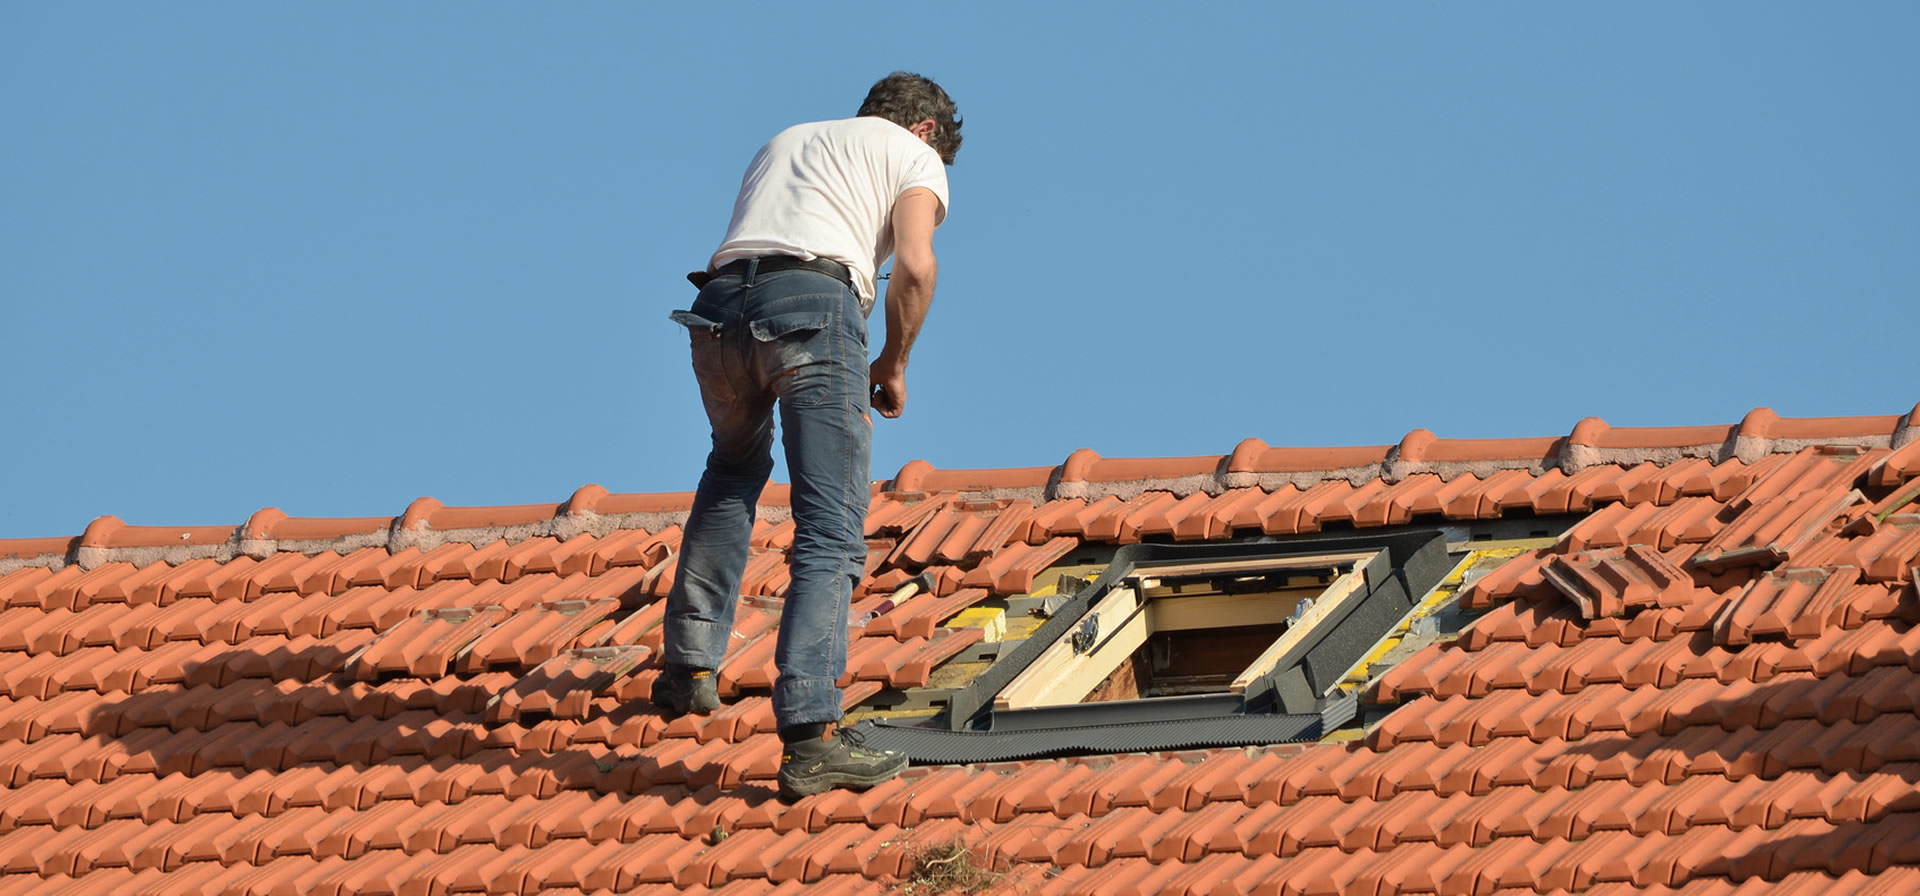 Roof Cleaning Services – Home